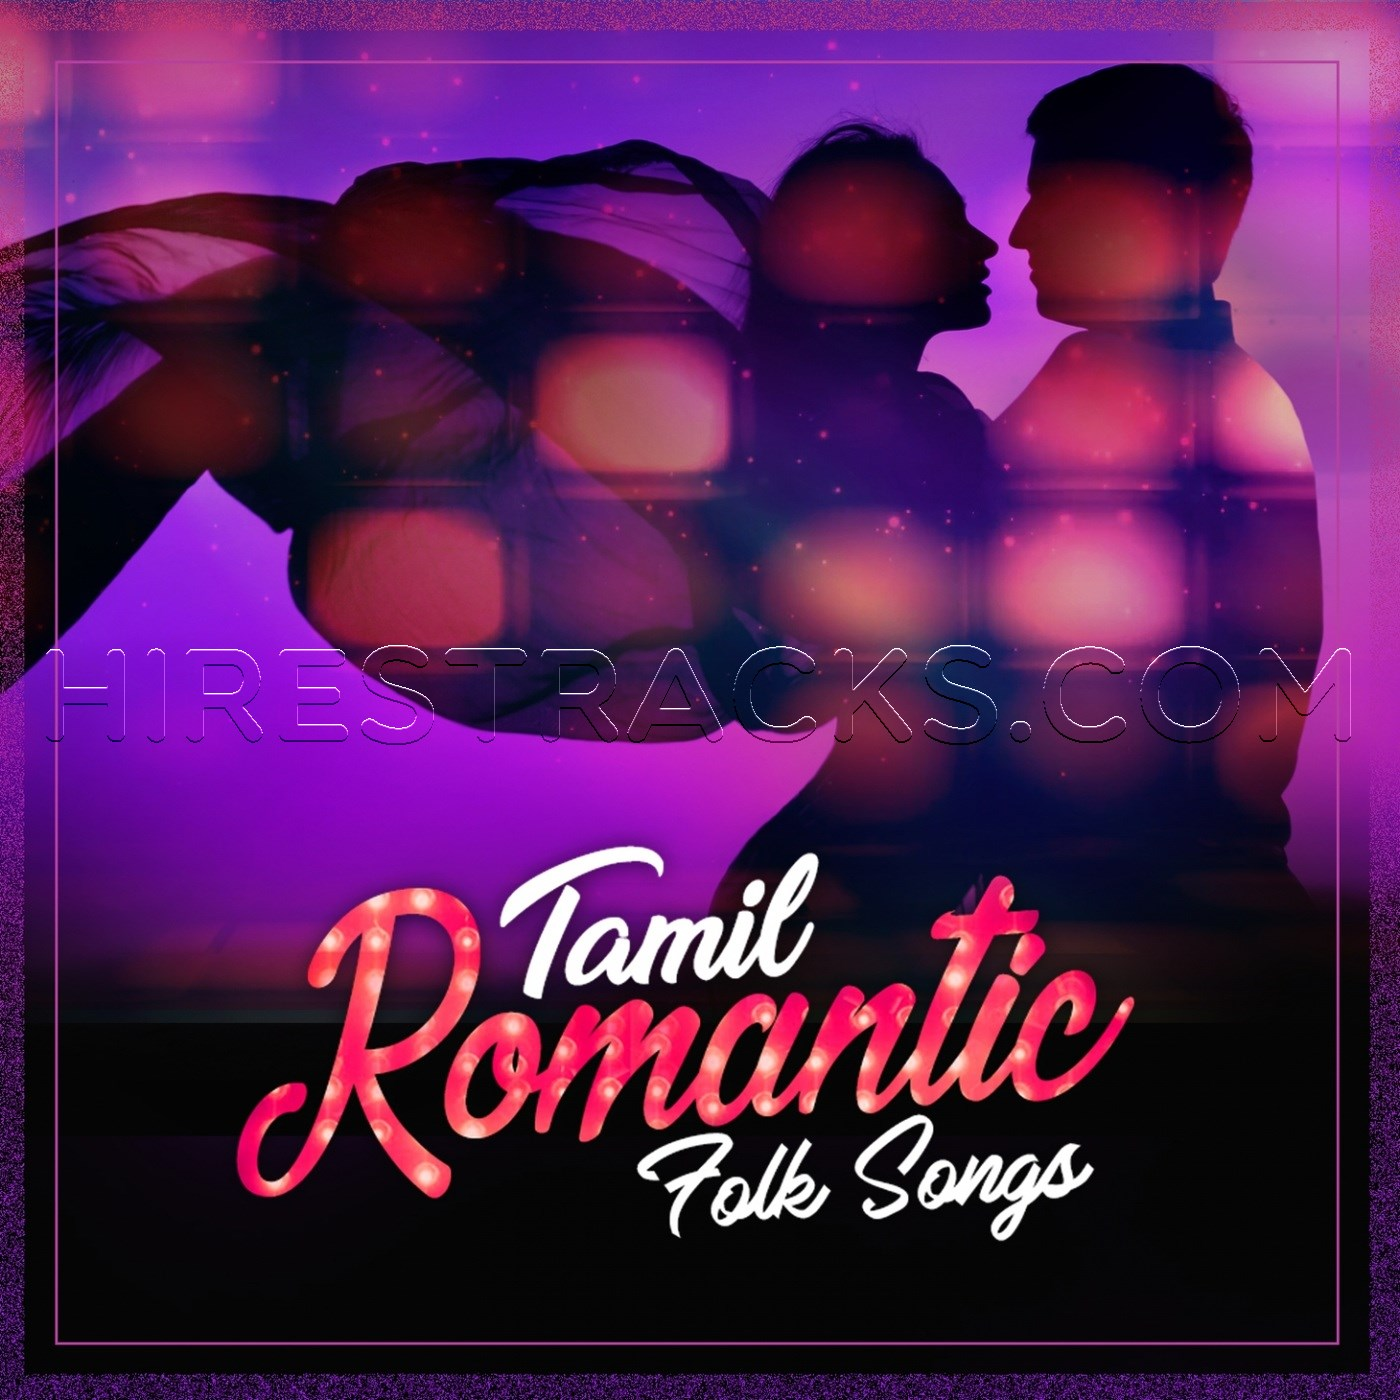 Tamil Romantic Folk Songs (1992) (Various Artists) (Digital-DL-FLAC)